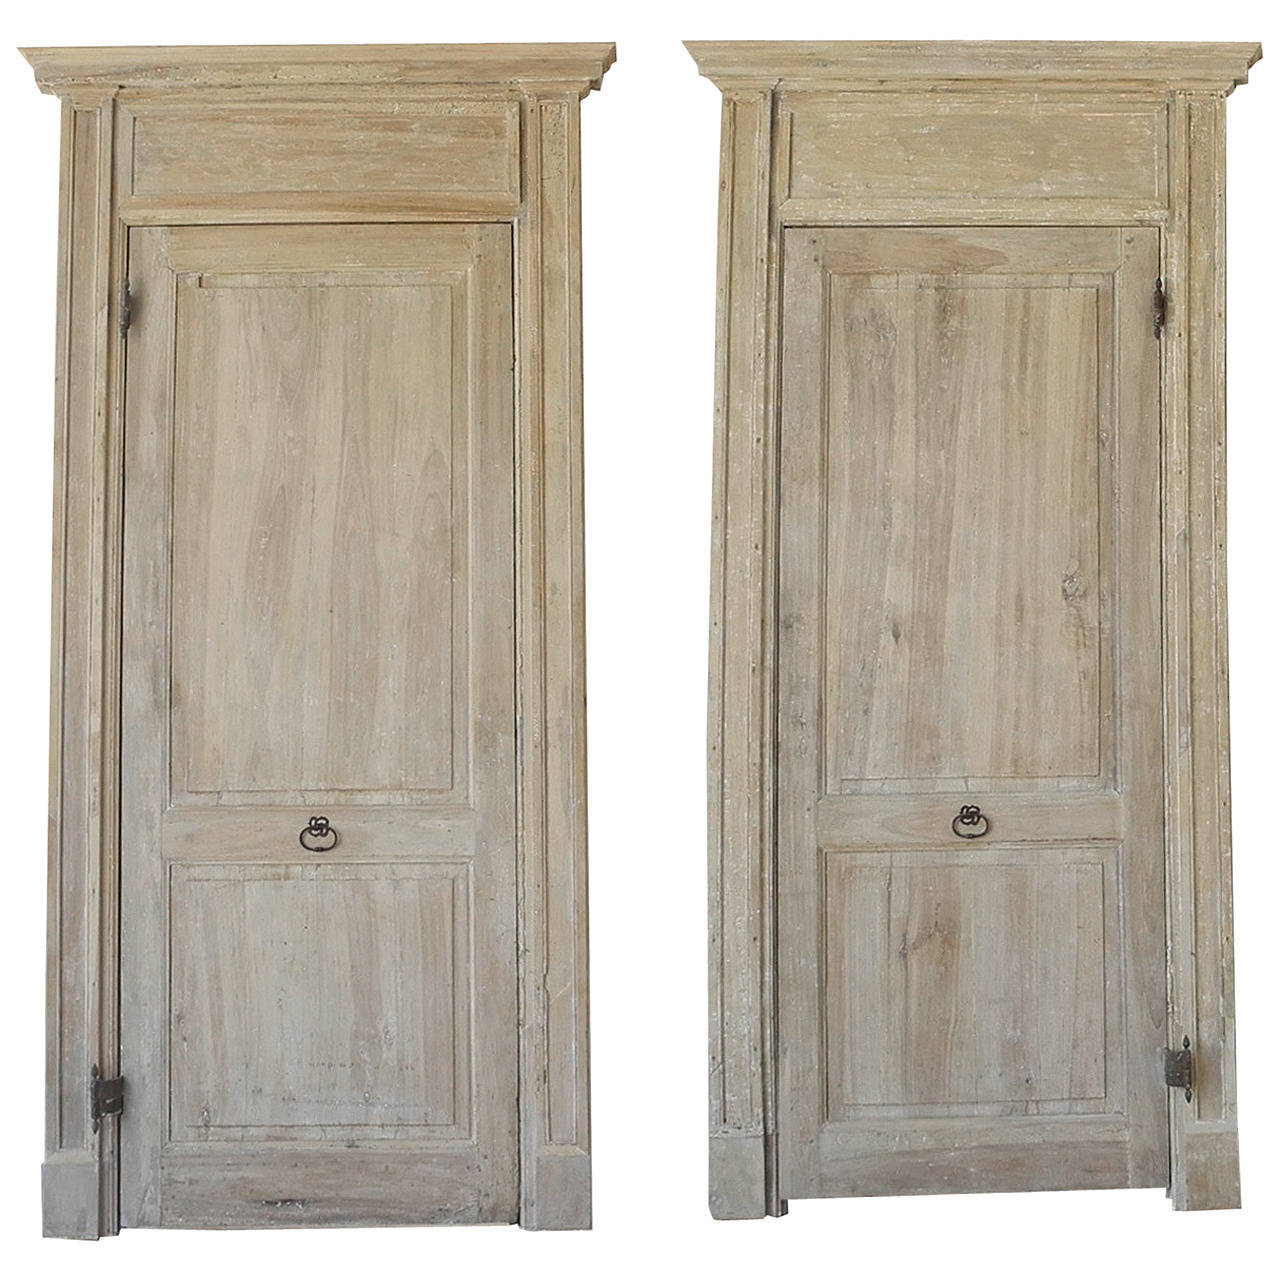 Antique french doors for sale australia index of 100 for French doors for sale